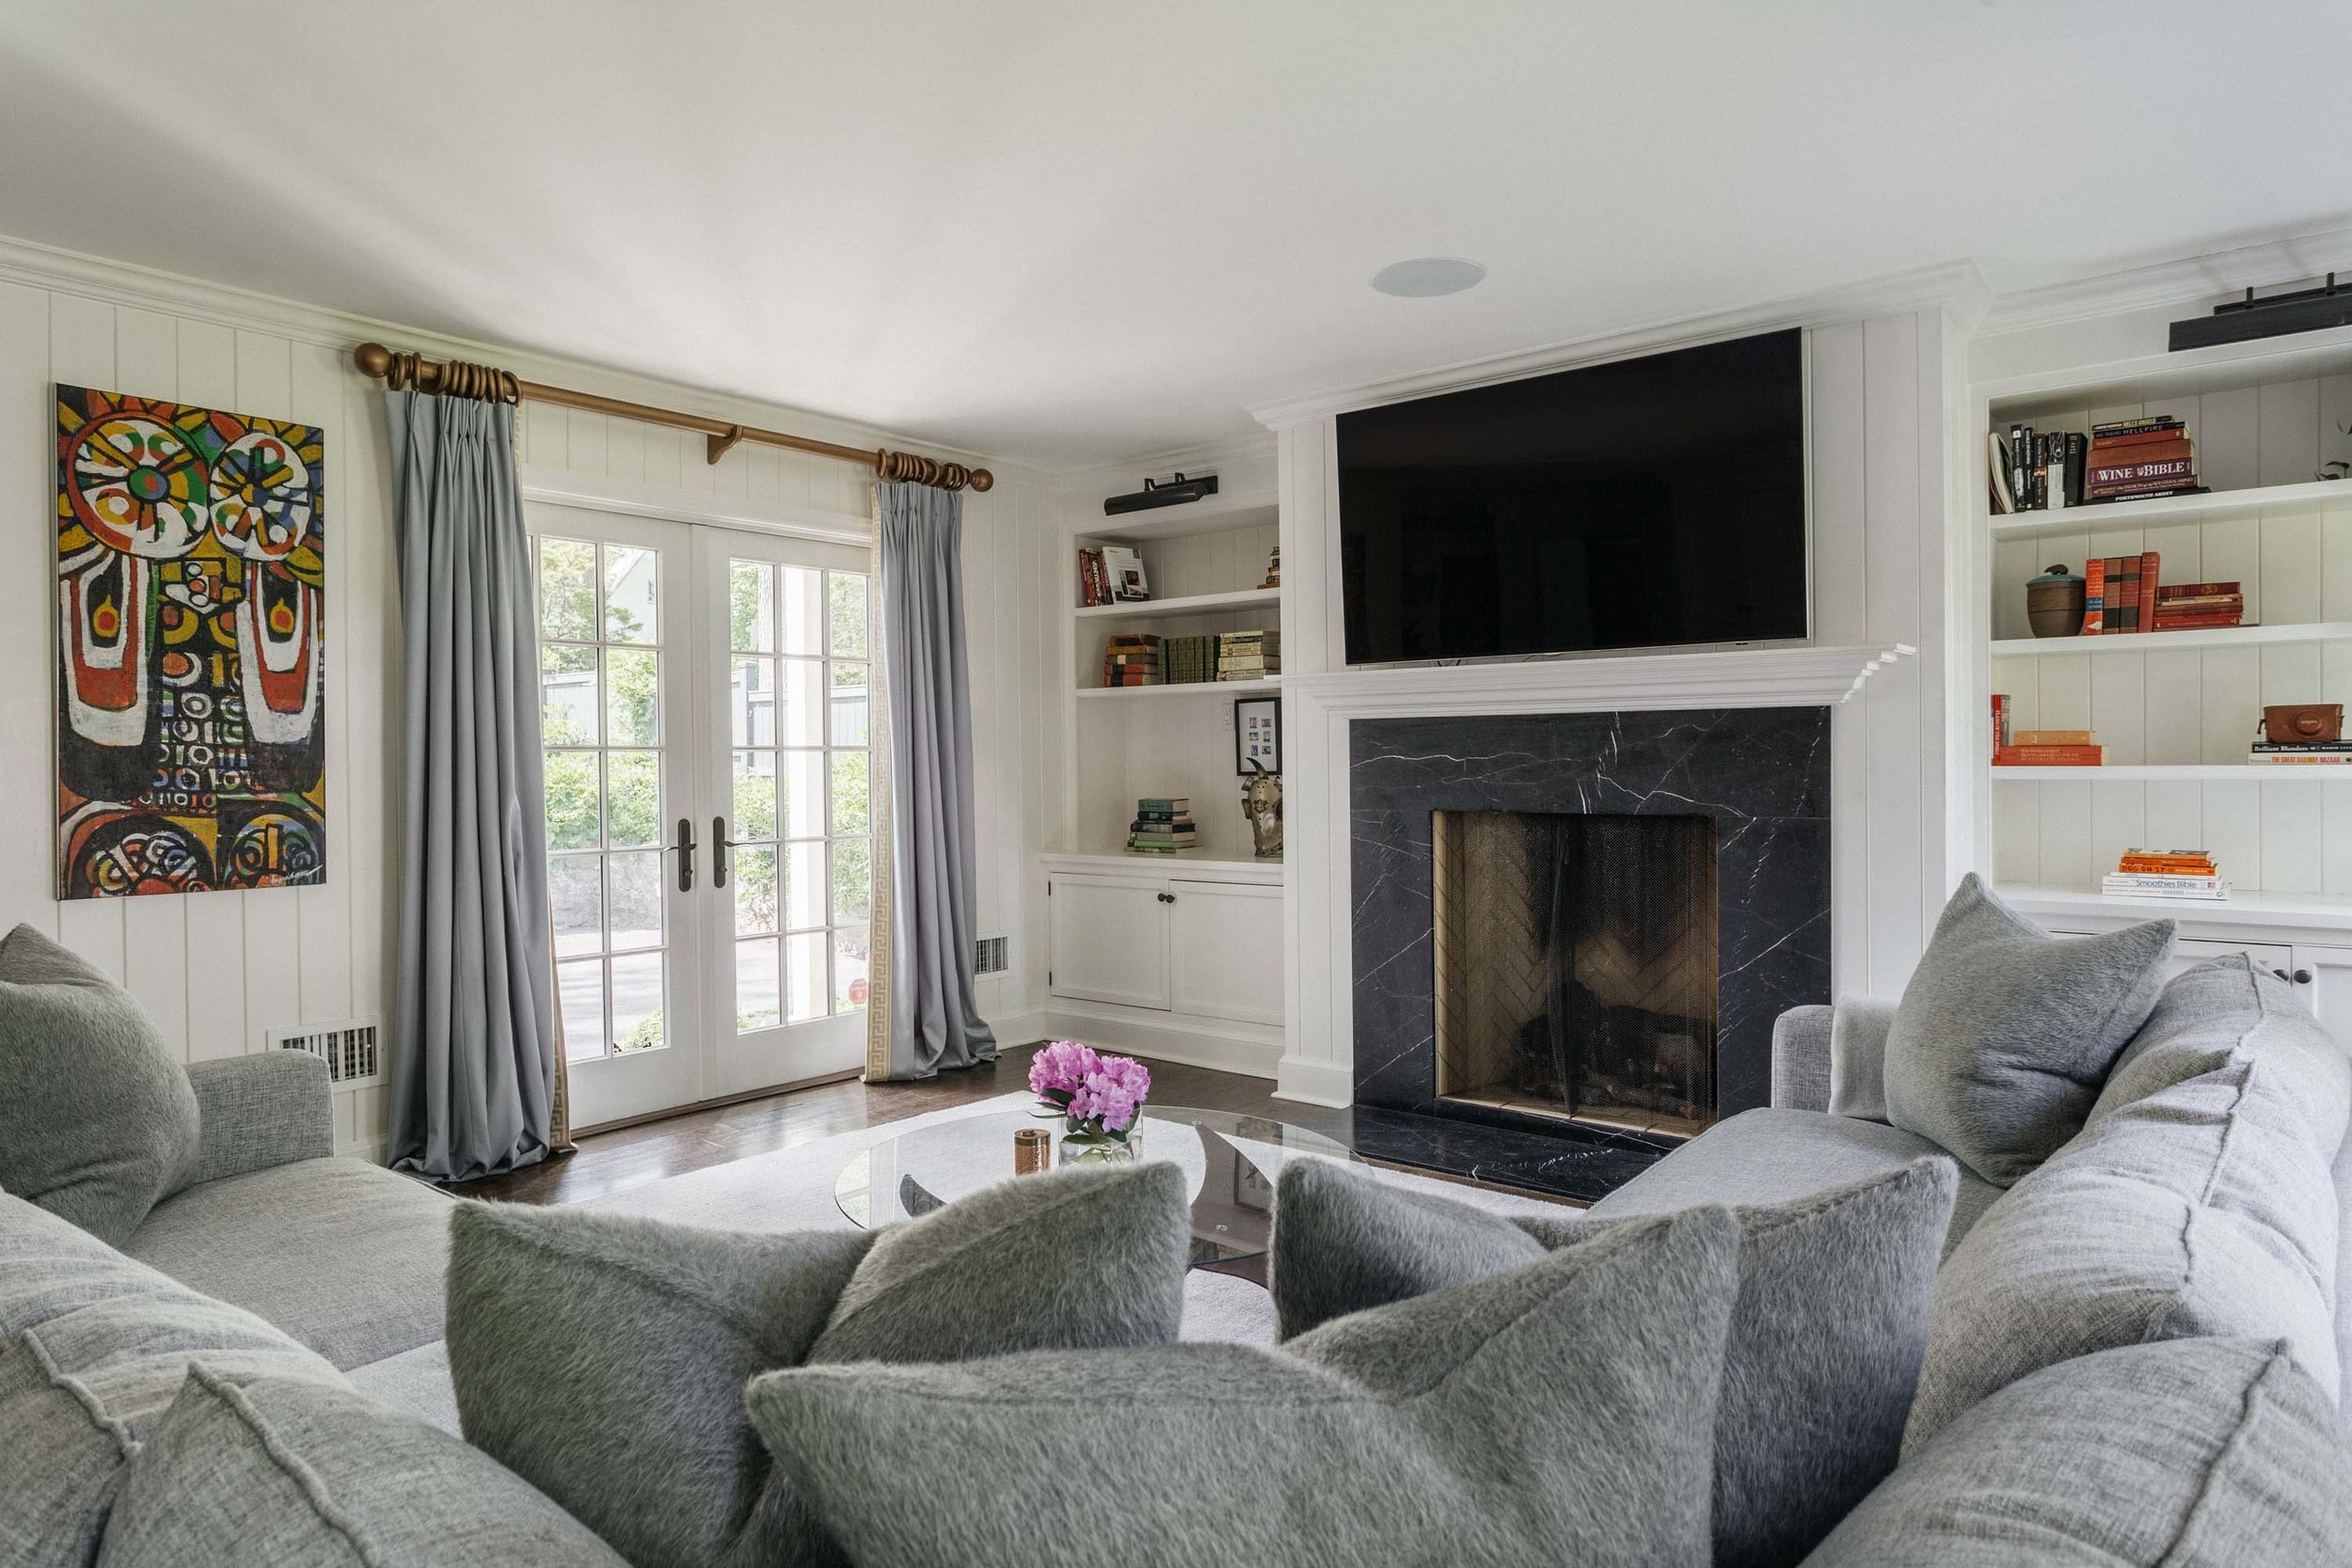 Living room with sofa, sets of pillows, fireplace and shelves